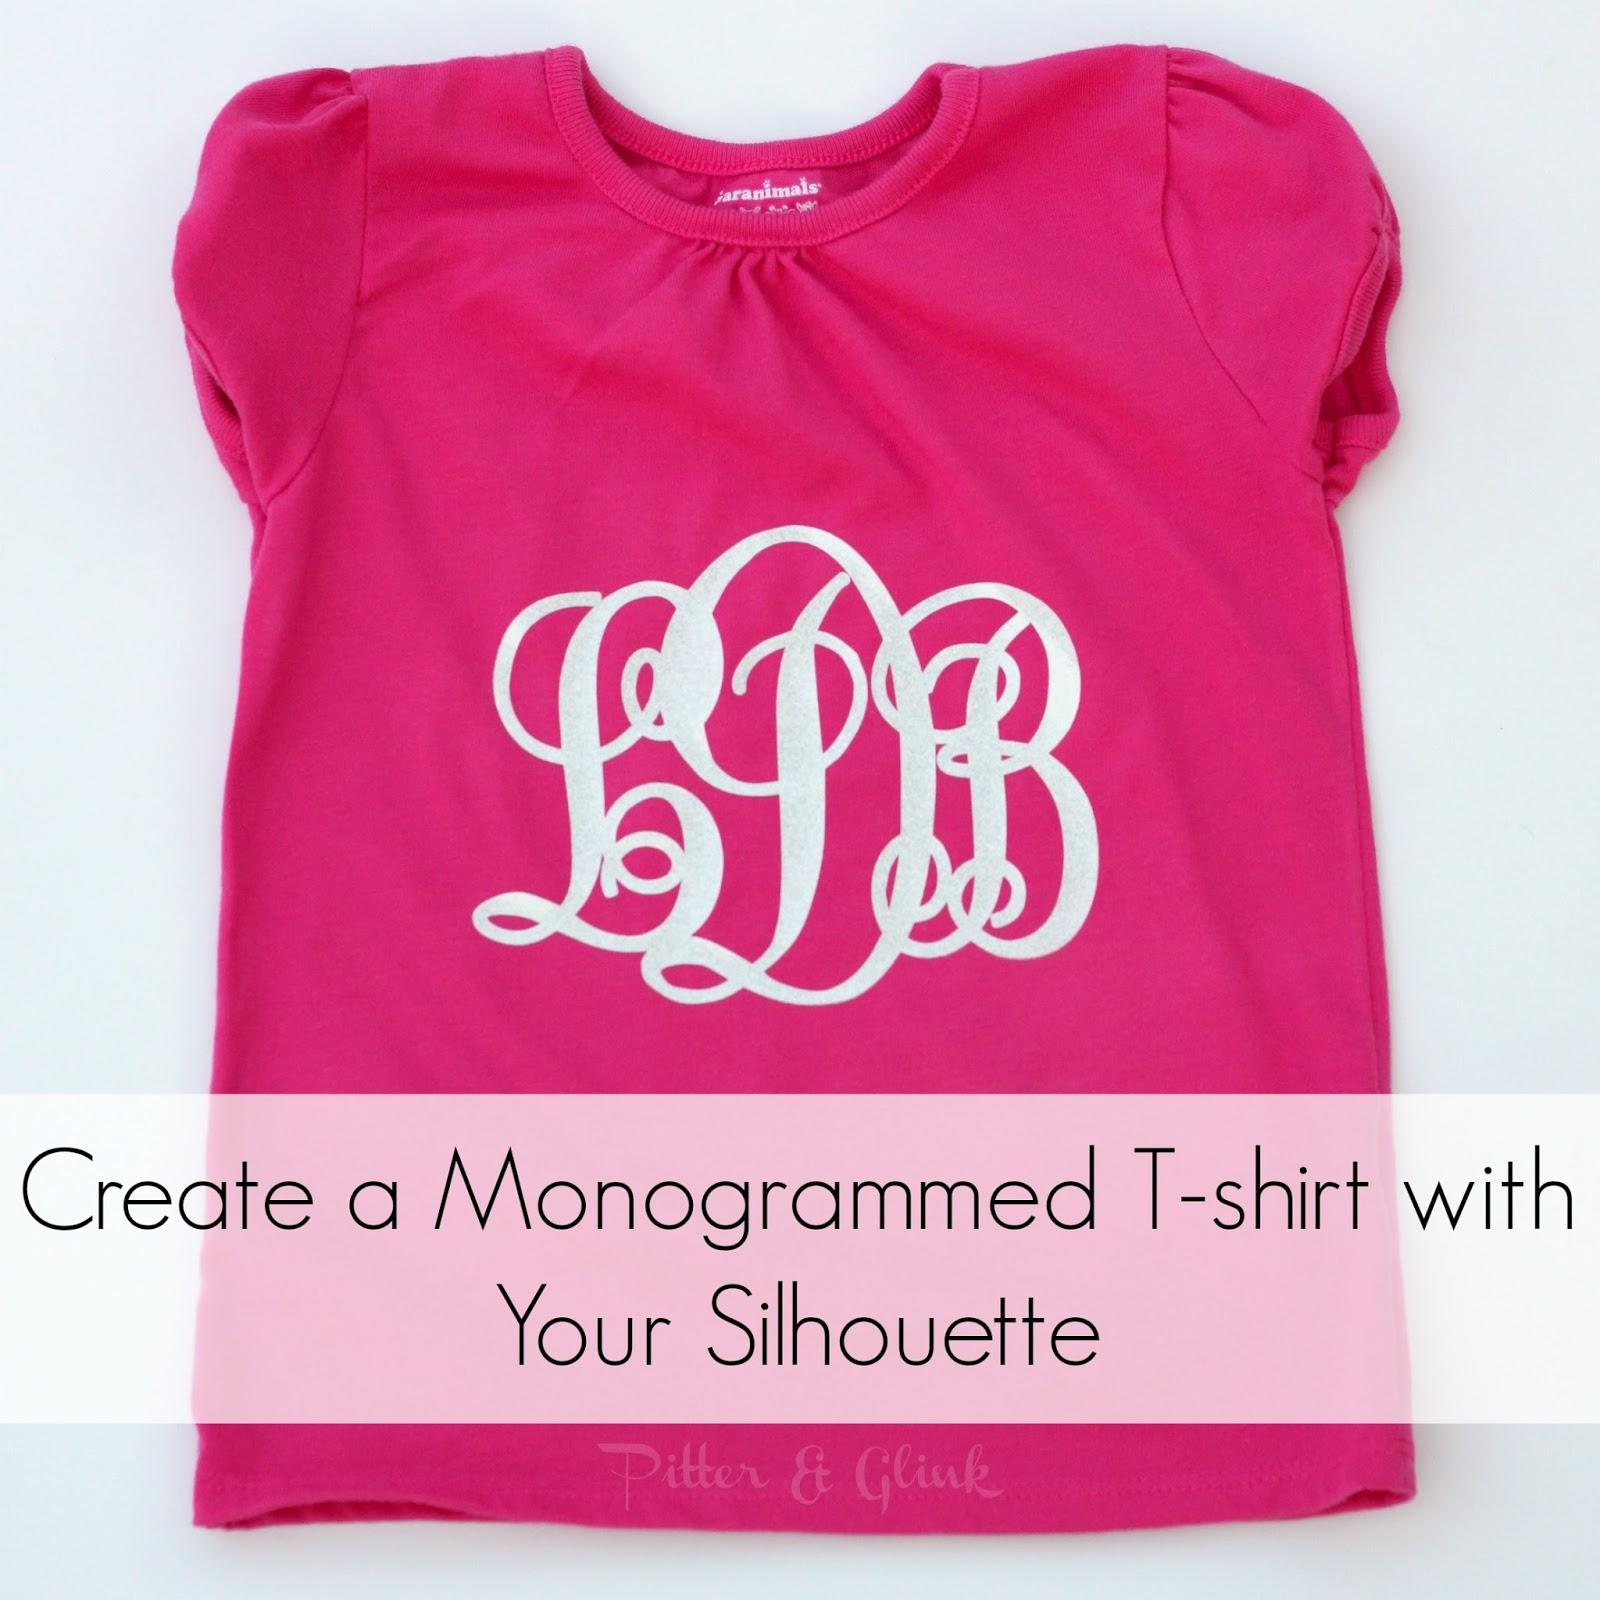 Monogram a T-shirt with Your Silhouette pitterandglink.com